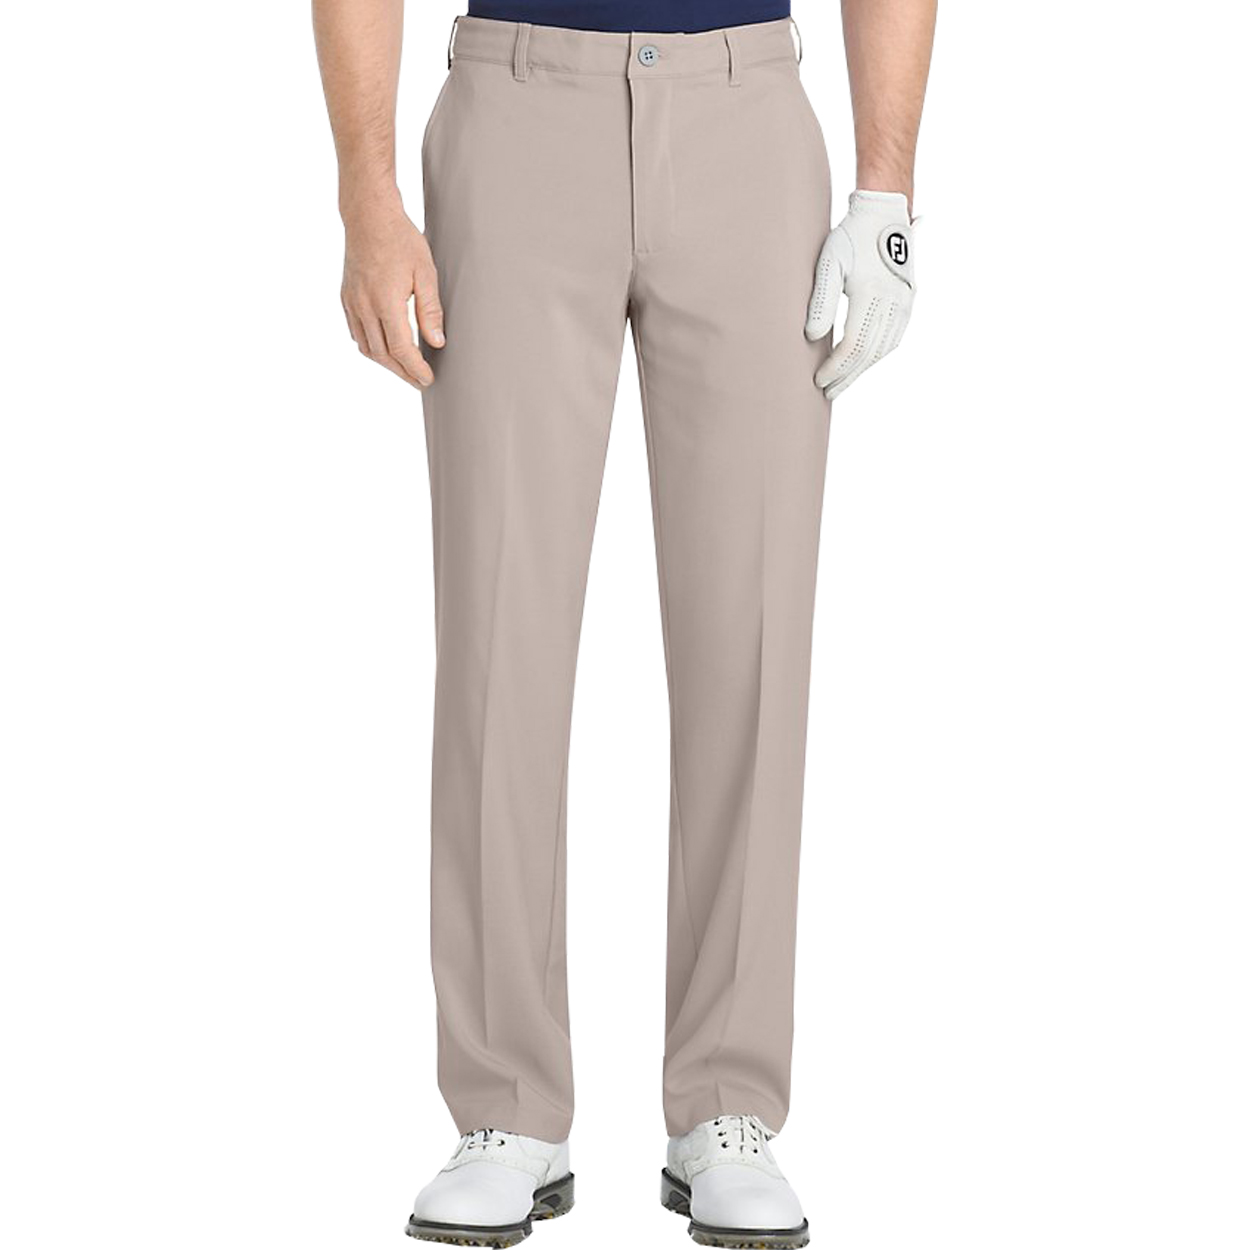 IZOD Golf Swingflex Pant...